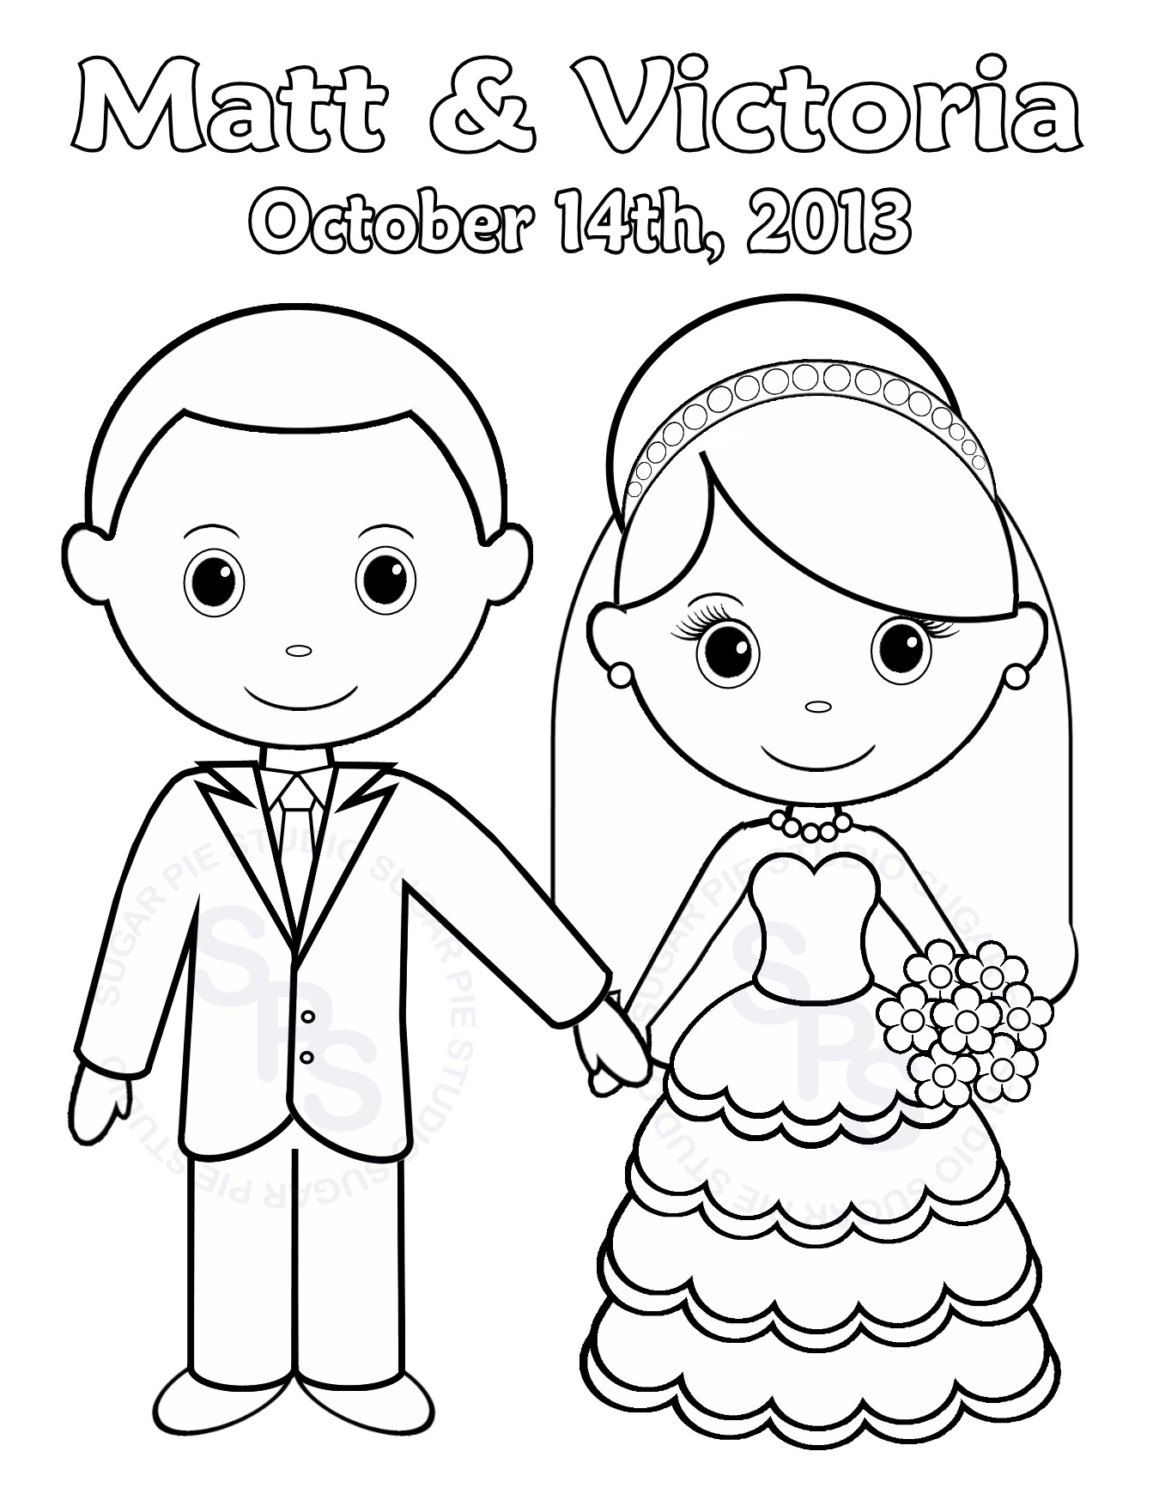 Coloring Pages : Zoloftonline Buy Info Coloring Page Weddingok Pages - Wedding Coloring Book Free Printable